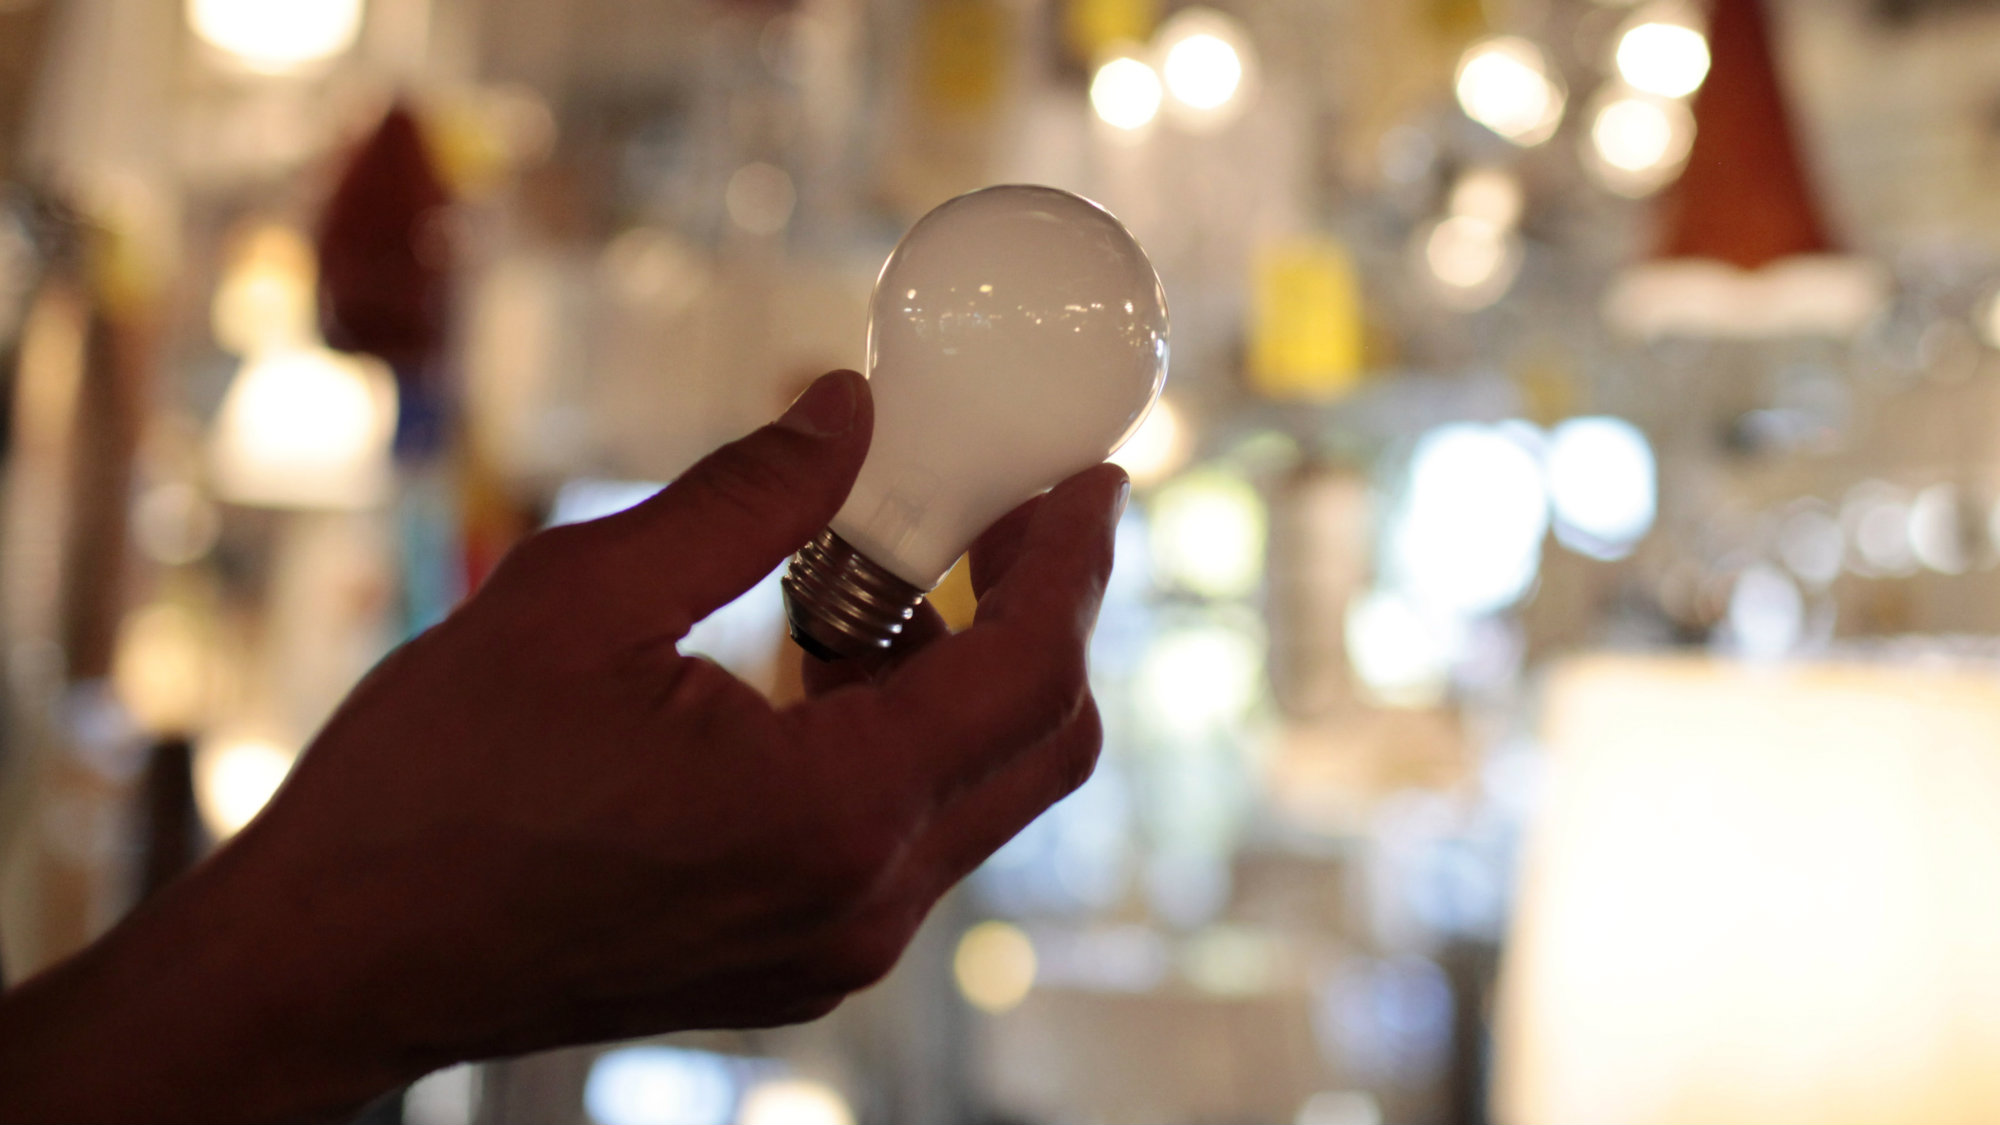 In this Jan. 21, 2011 file photo, manager Nick Reynoza holds a 100-watt incandescent light bulb at Royal Lighting in Los Angeles.